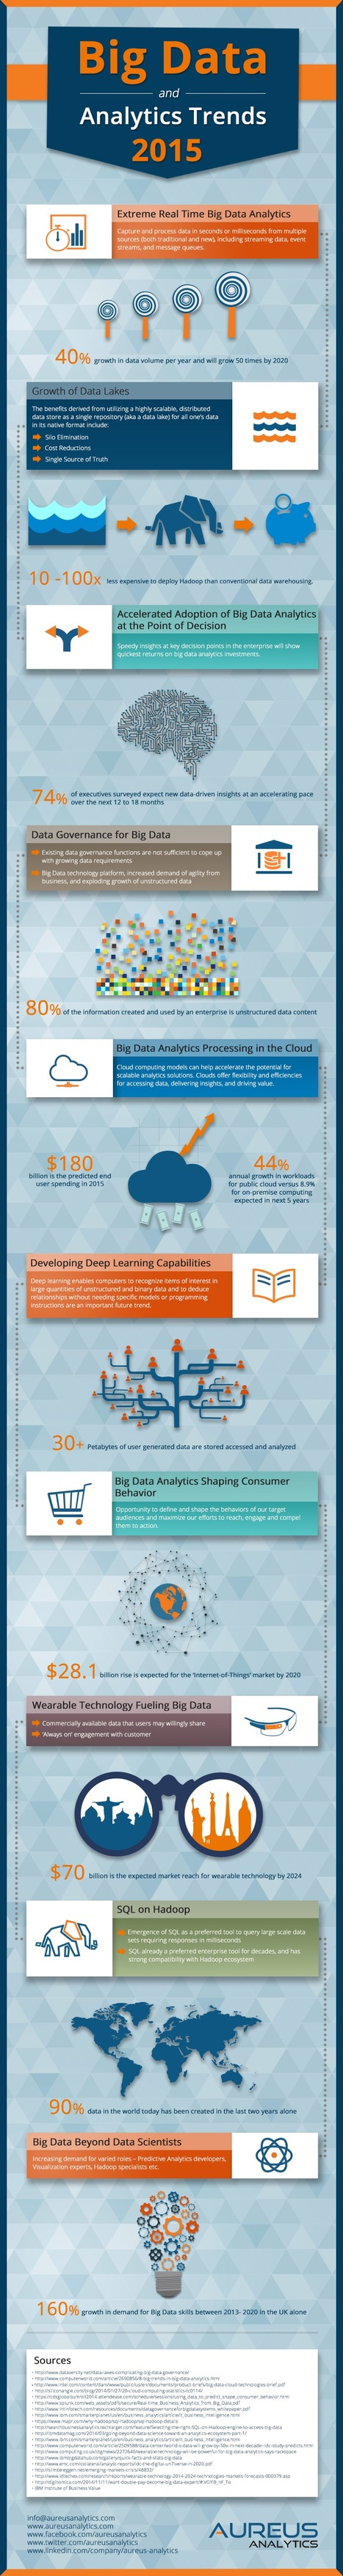 Big Data and Analytics Trends 2015 #infographic | Start-Up & Growth Hacking Tips | Scoop.it